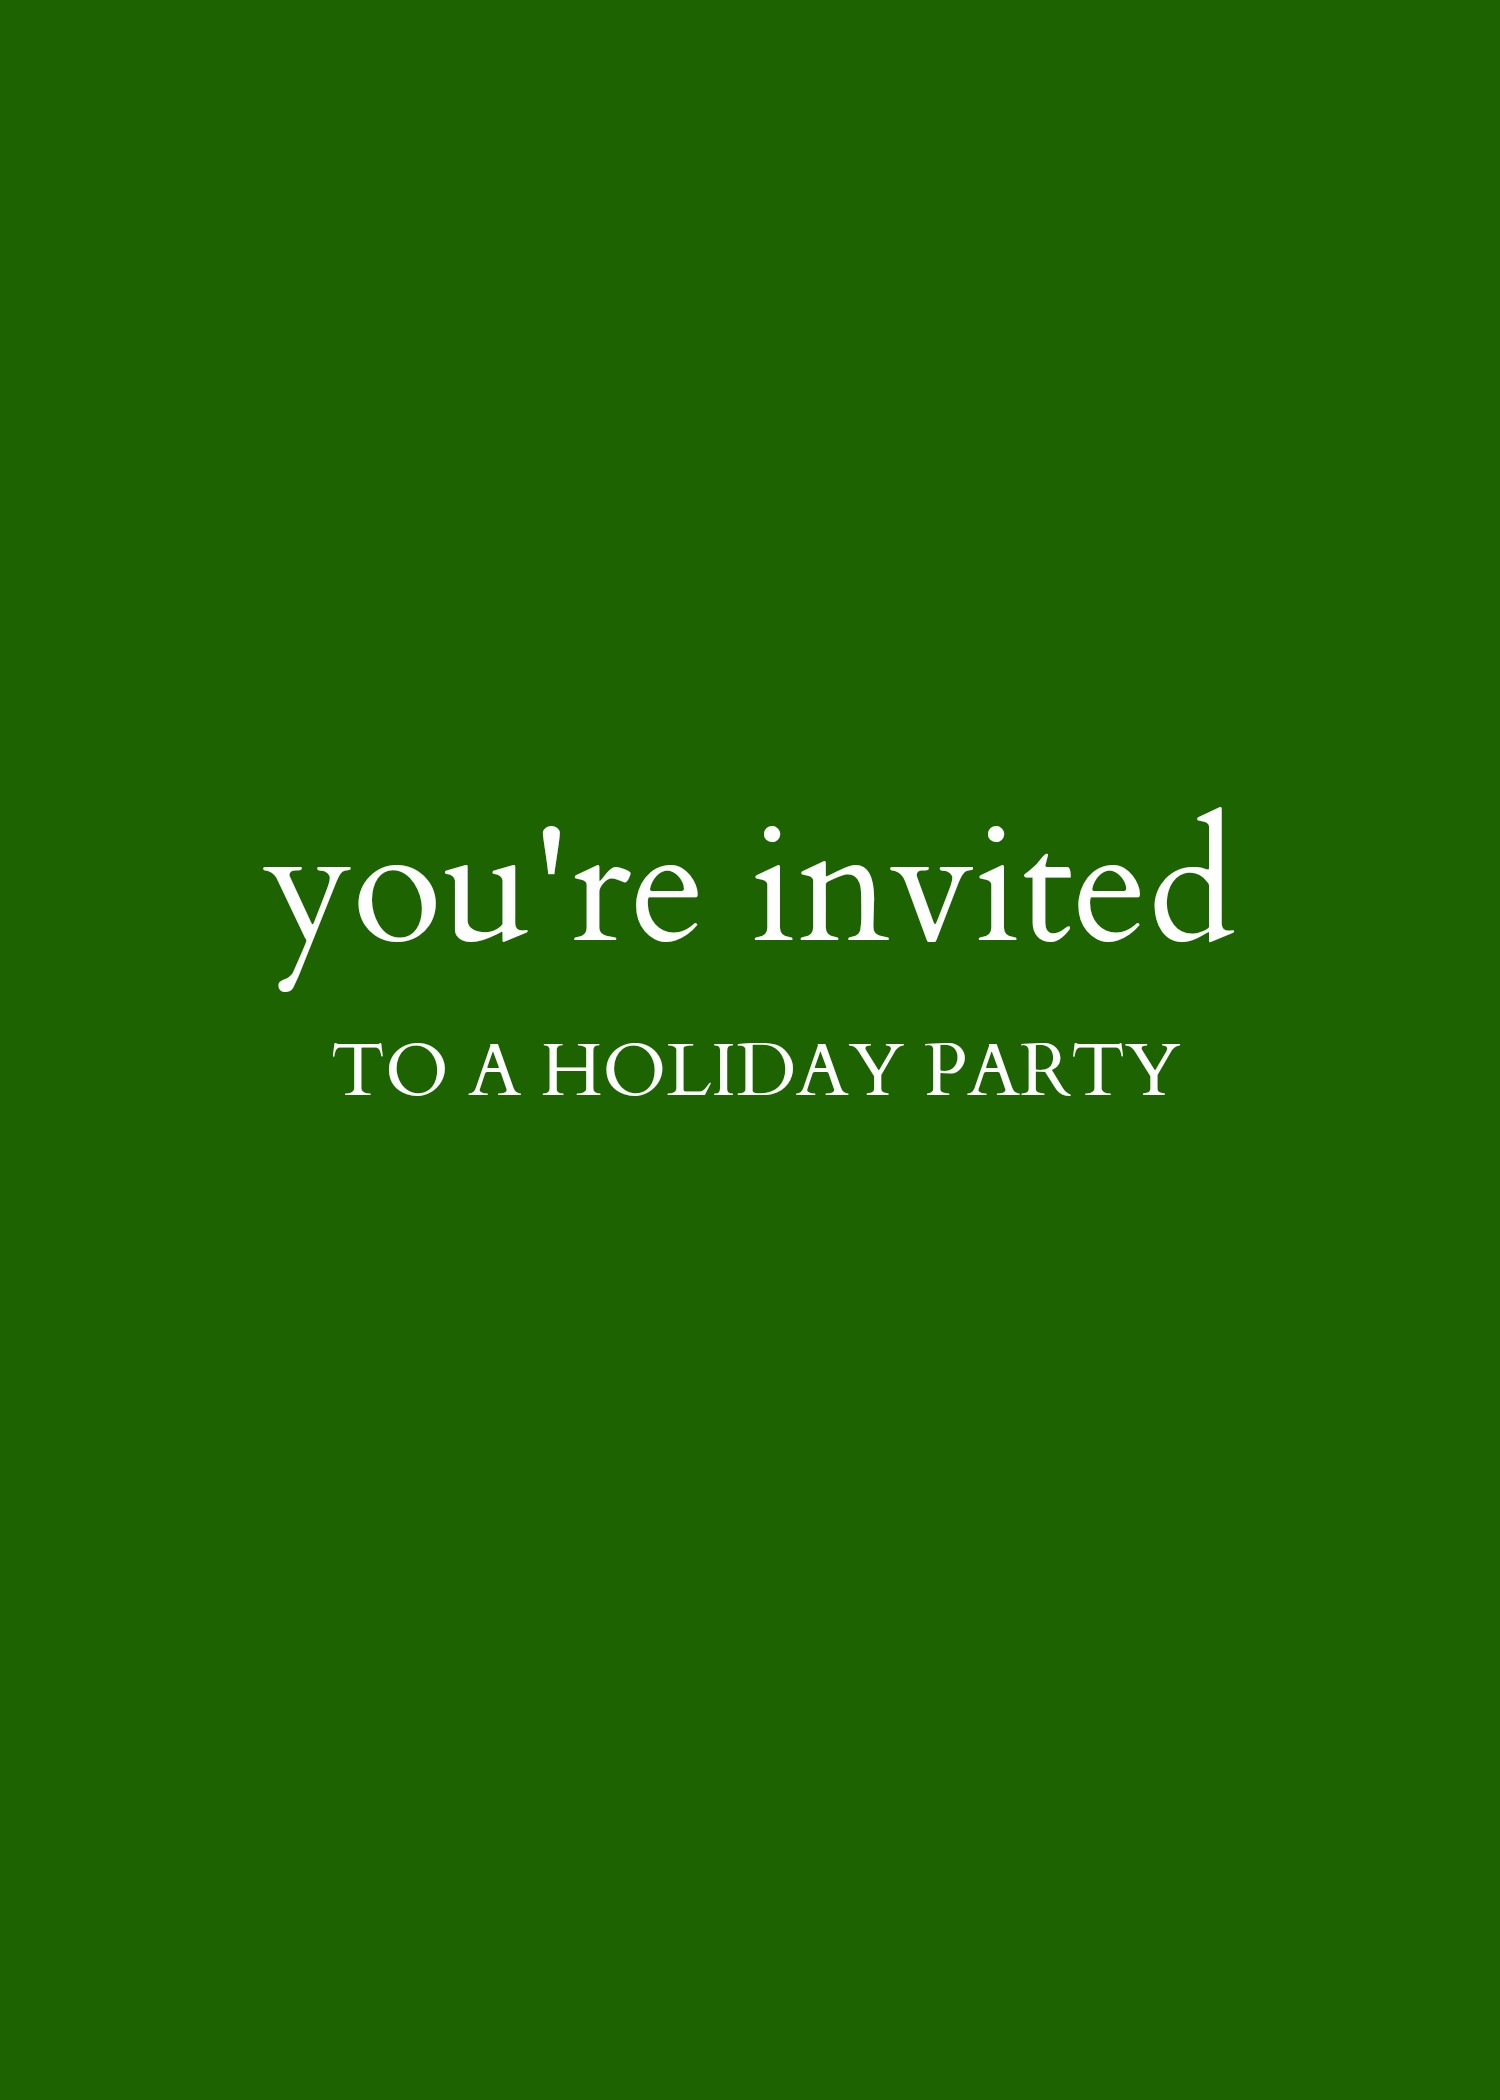 Kate Spade Holiday Party Invite - cover